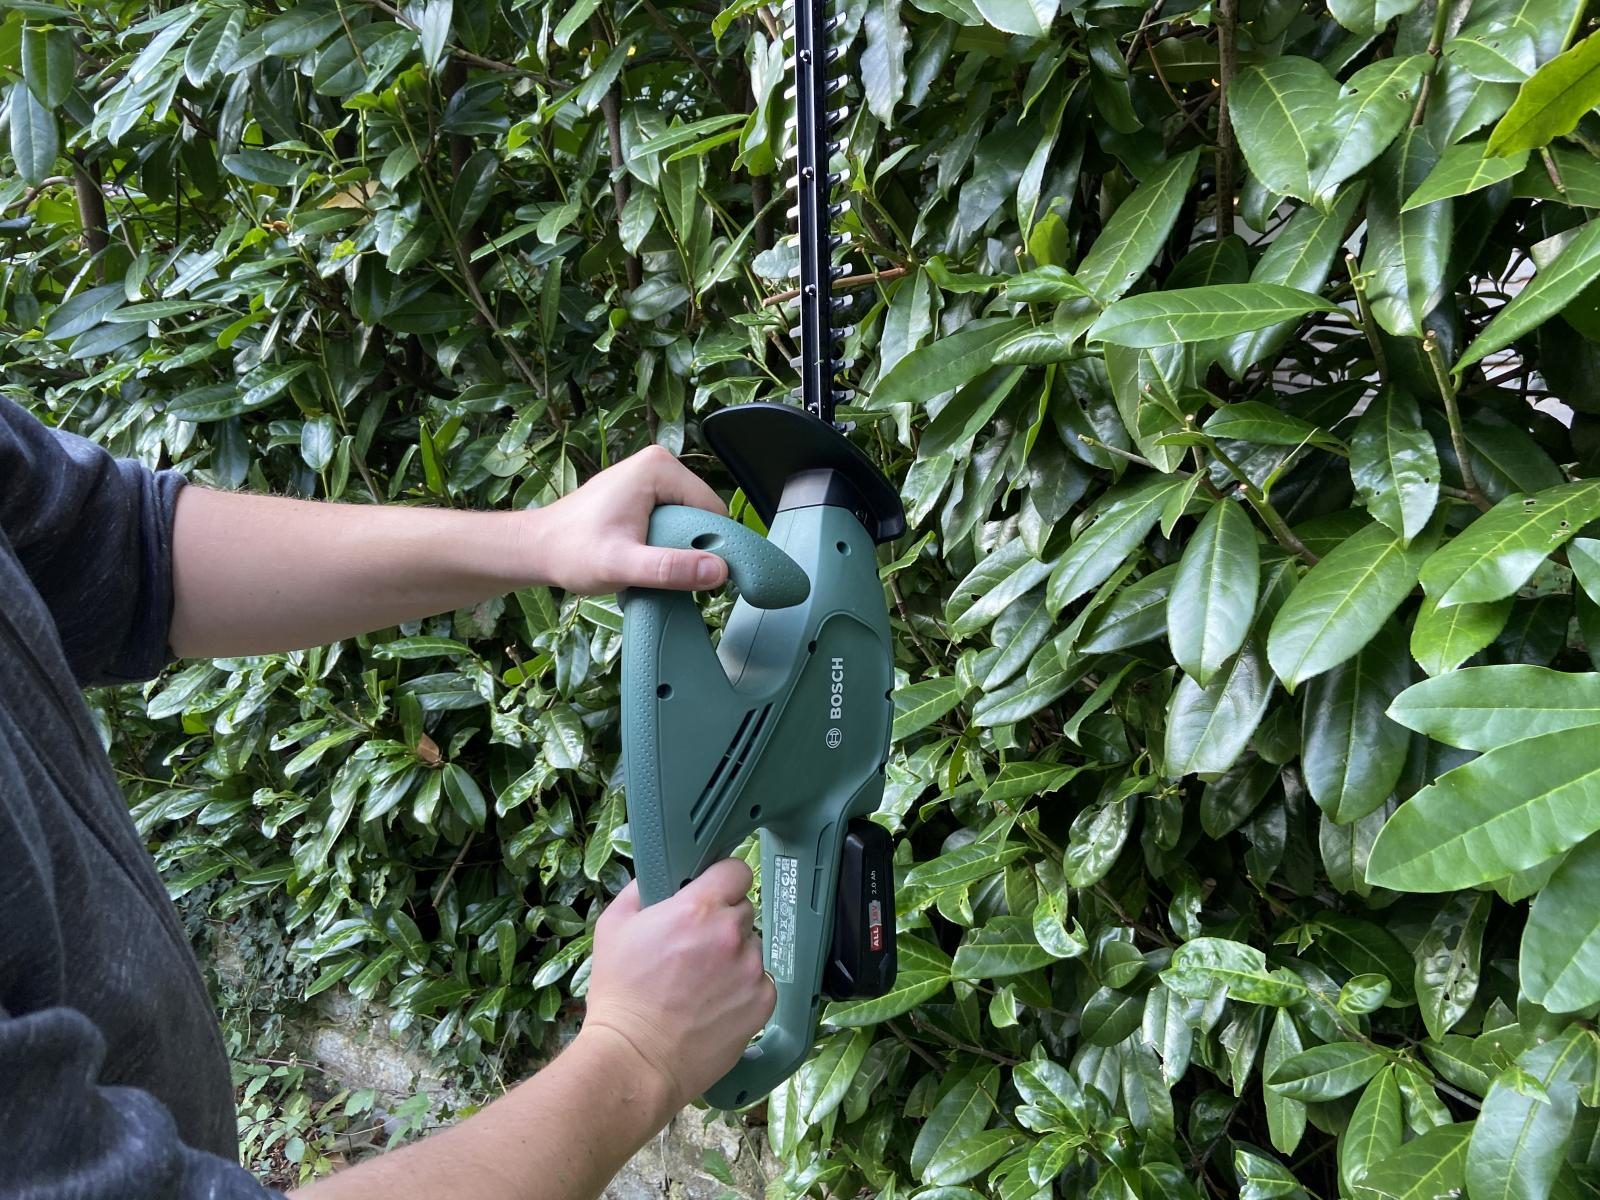 Hedge cuttings with the Bosch EasyHedgeCut 18-45